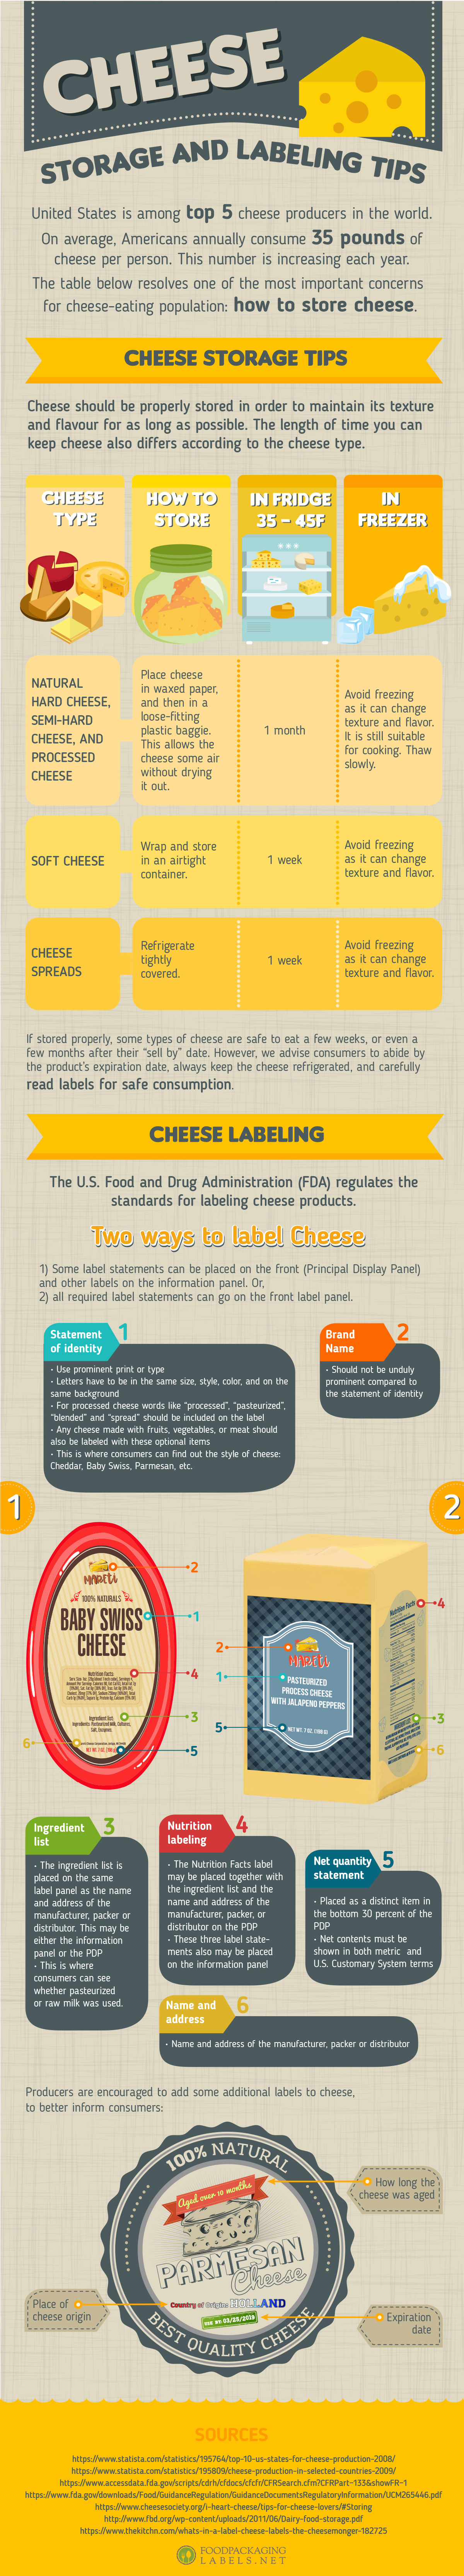 cheese labeling and storage tips